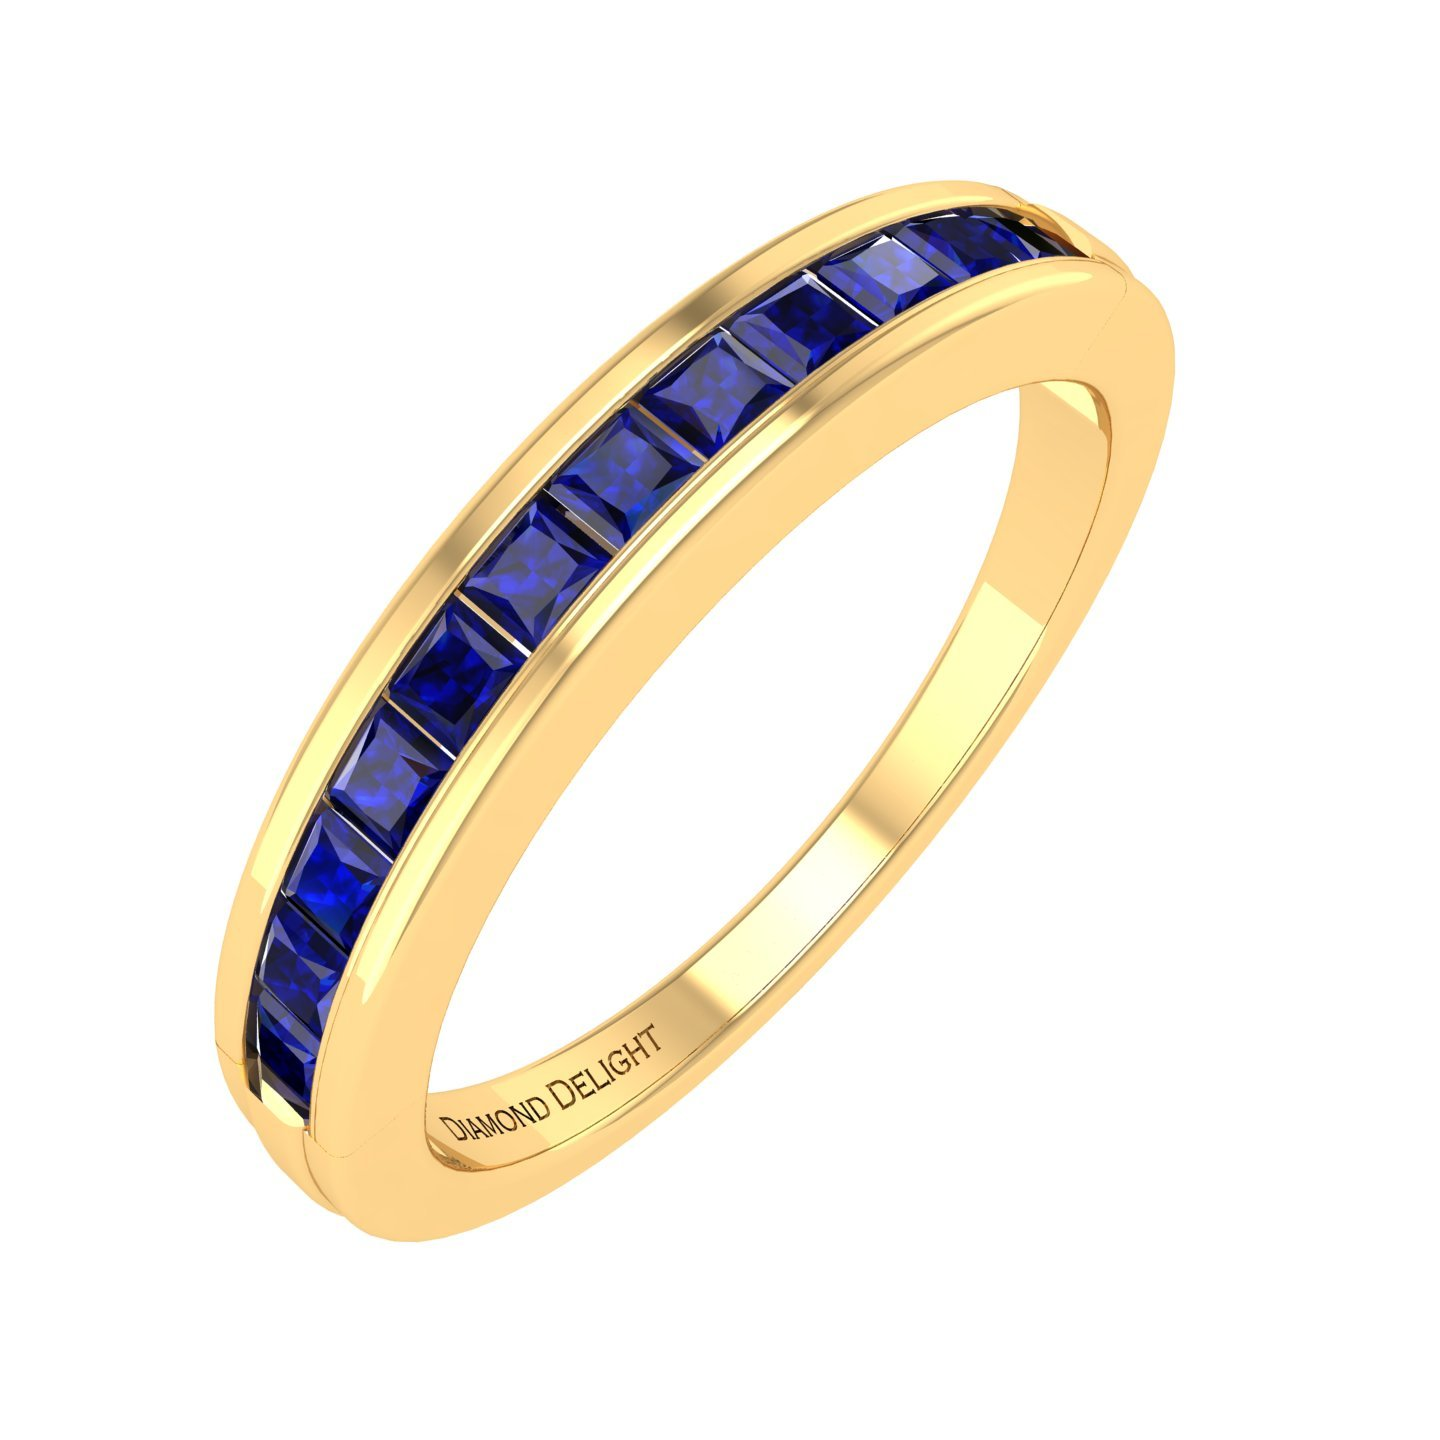 10K Yellow Gold Princess-cut Channel Set Wedding/anniversary Blue Sapphire Band Ring (3/4 Carat) by Diamond Delight